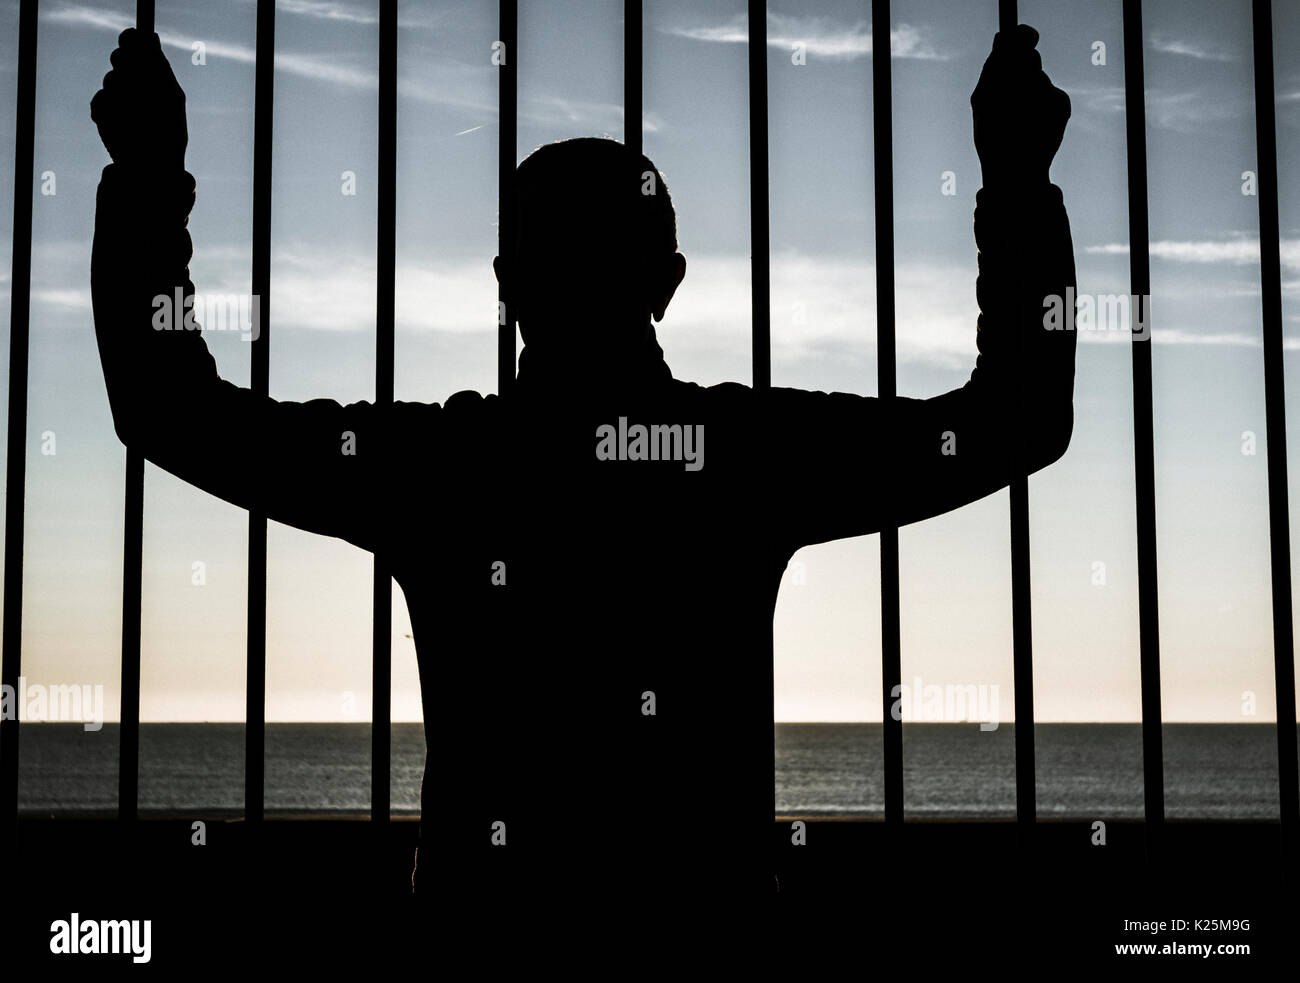 Silhouette of man looking through steel bars with sea in background. Depression, mental health, asylum seeker, immigration... concept image. - Stock Image